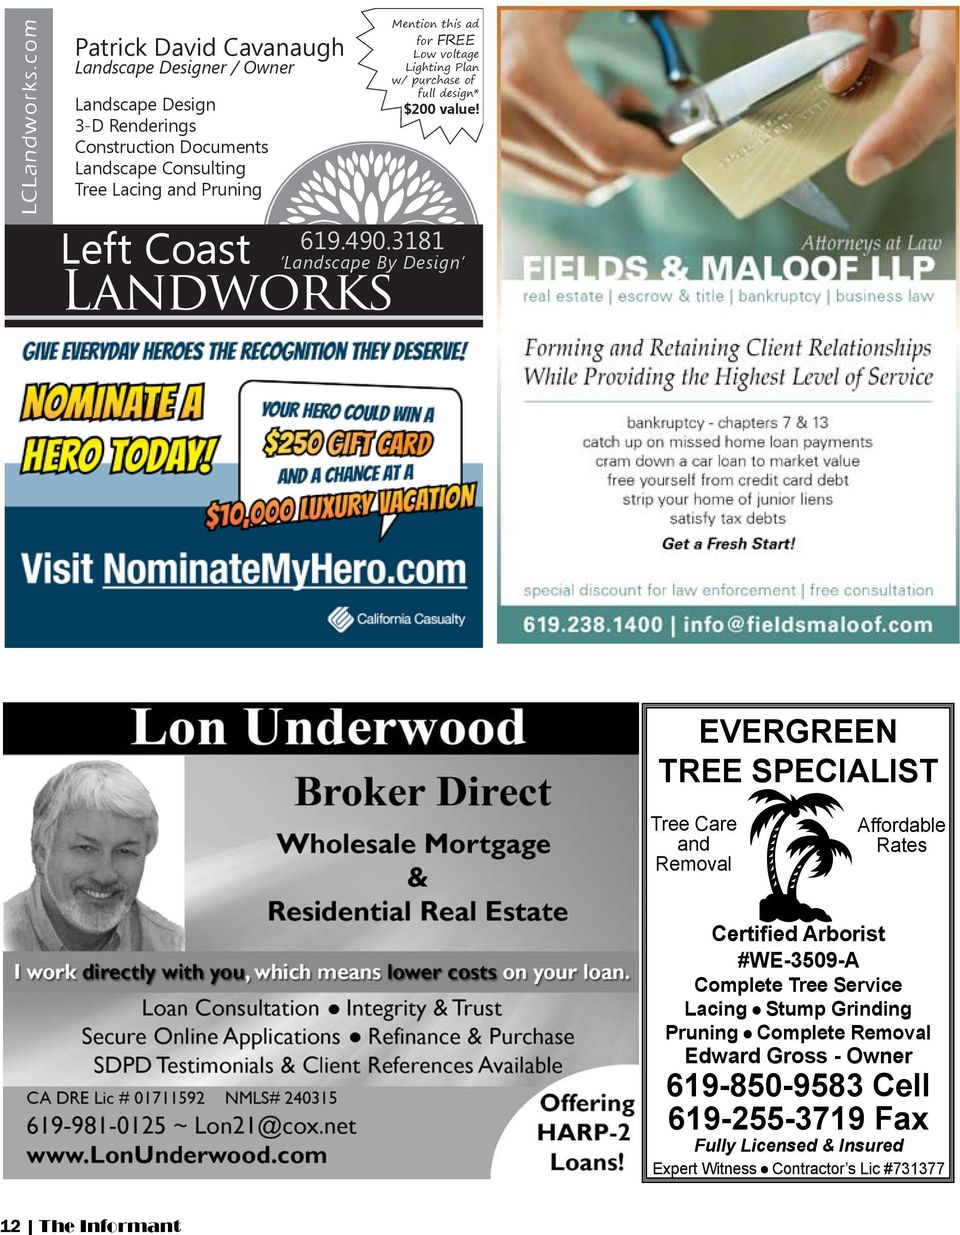 Pruning Left Coast 619.490.3181 Landworks Mention this ad for FREE Low voltage Lighting Plan w/ purchase of full design* $200 value!